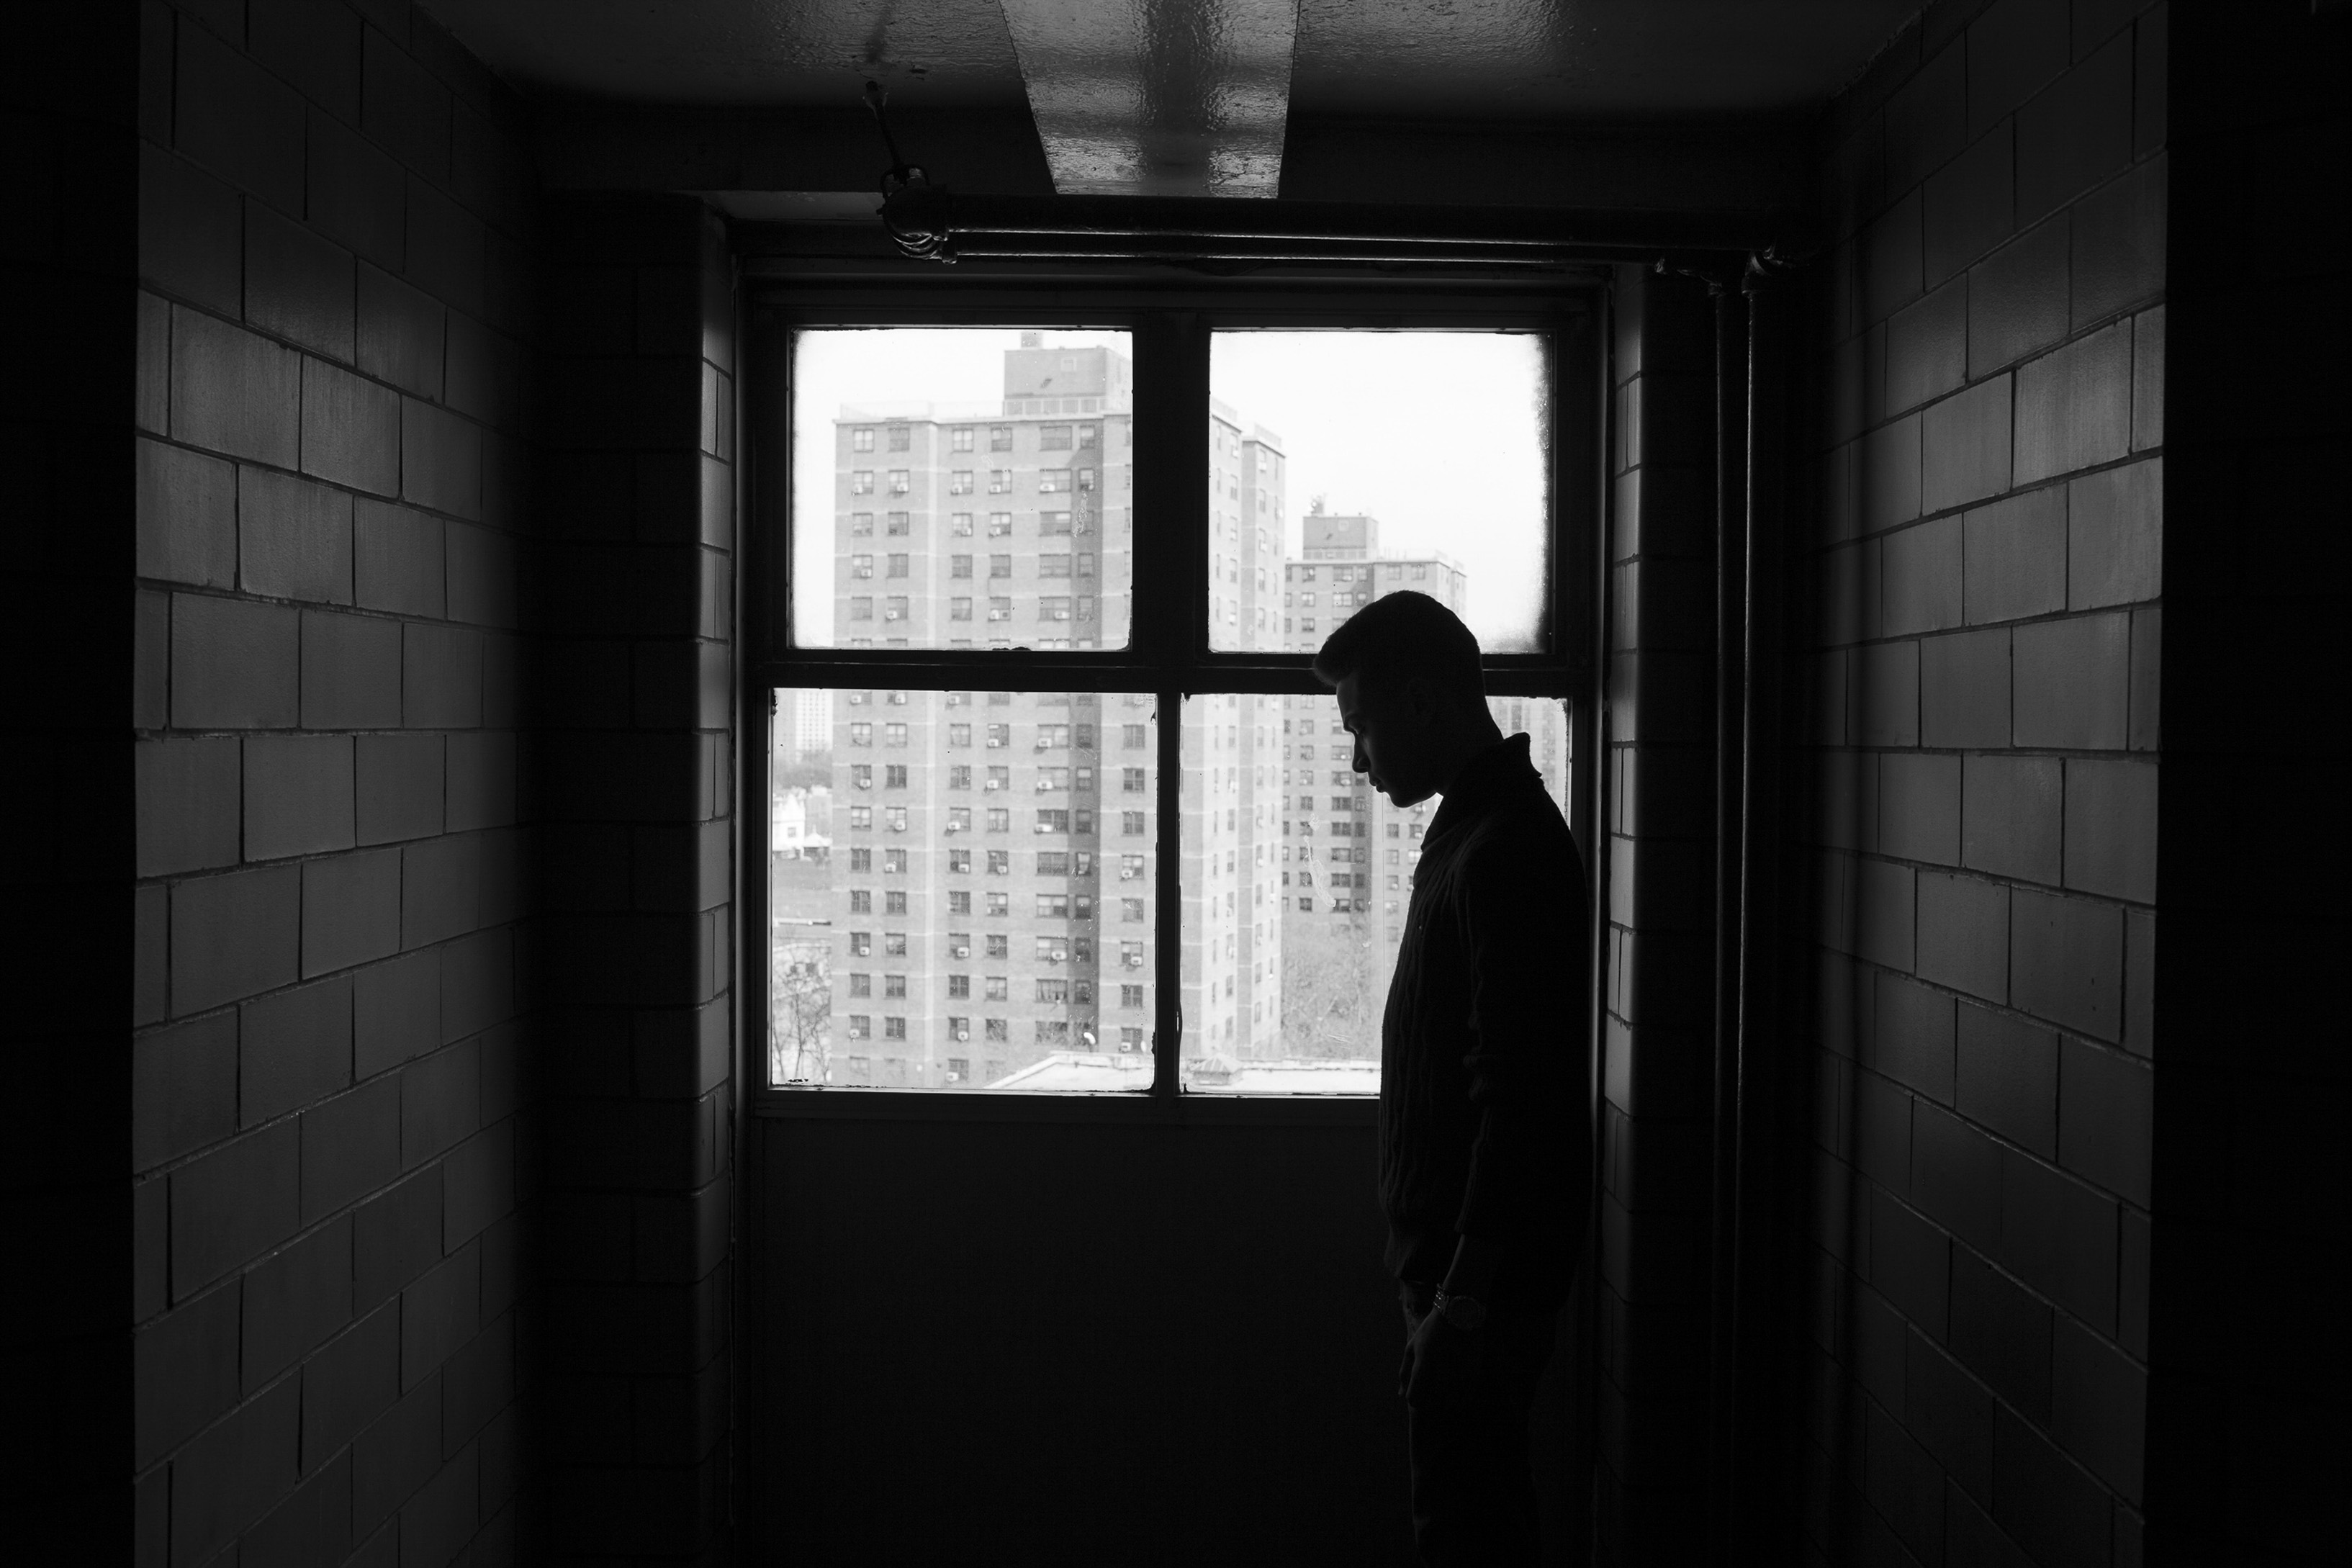 Chavi Leon stands in the hallway of his family's apartment during spring break on April 17, 2016, Mott Haven, South Bronx, New York. (Photo by Sarah Blesener/GroundTruth/Alexia Foundation)